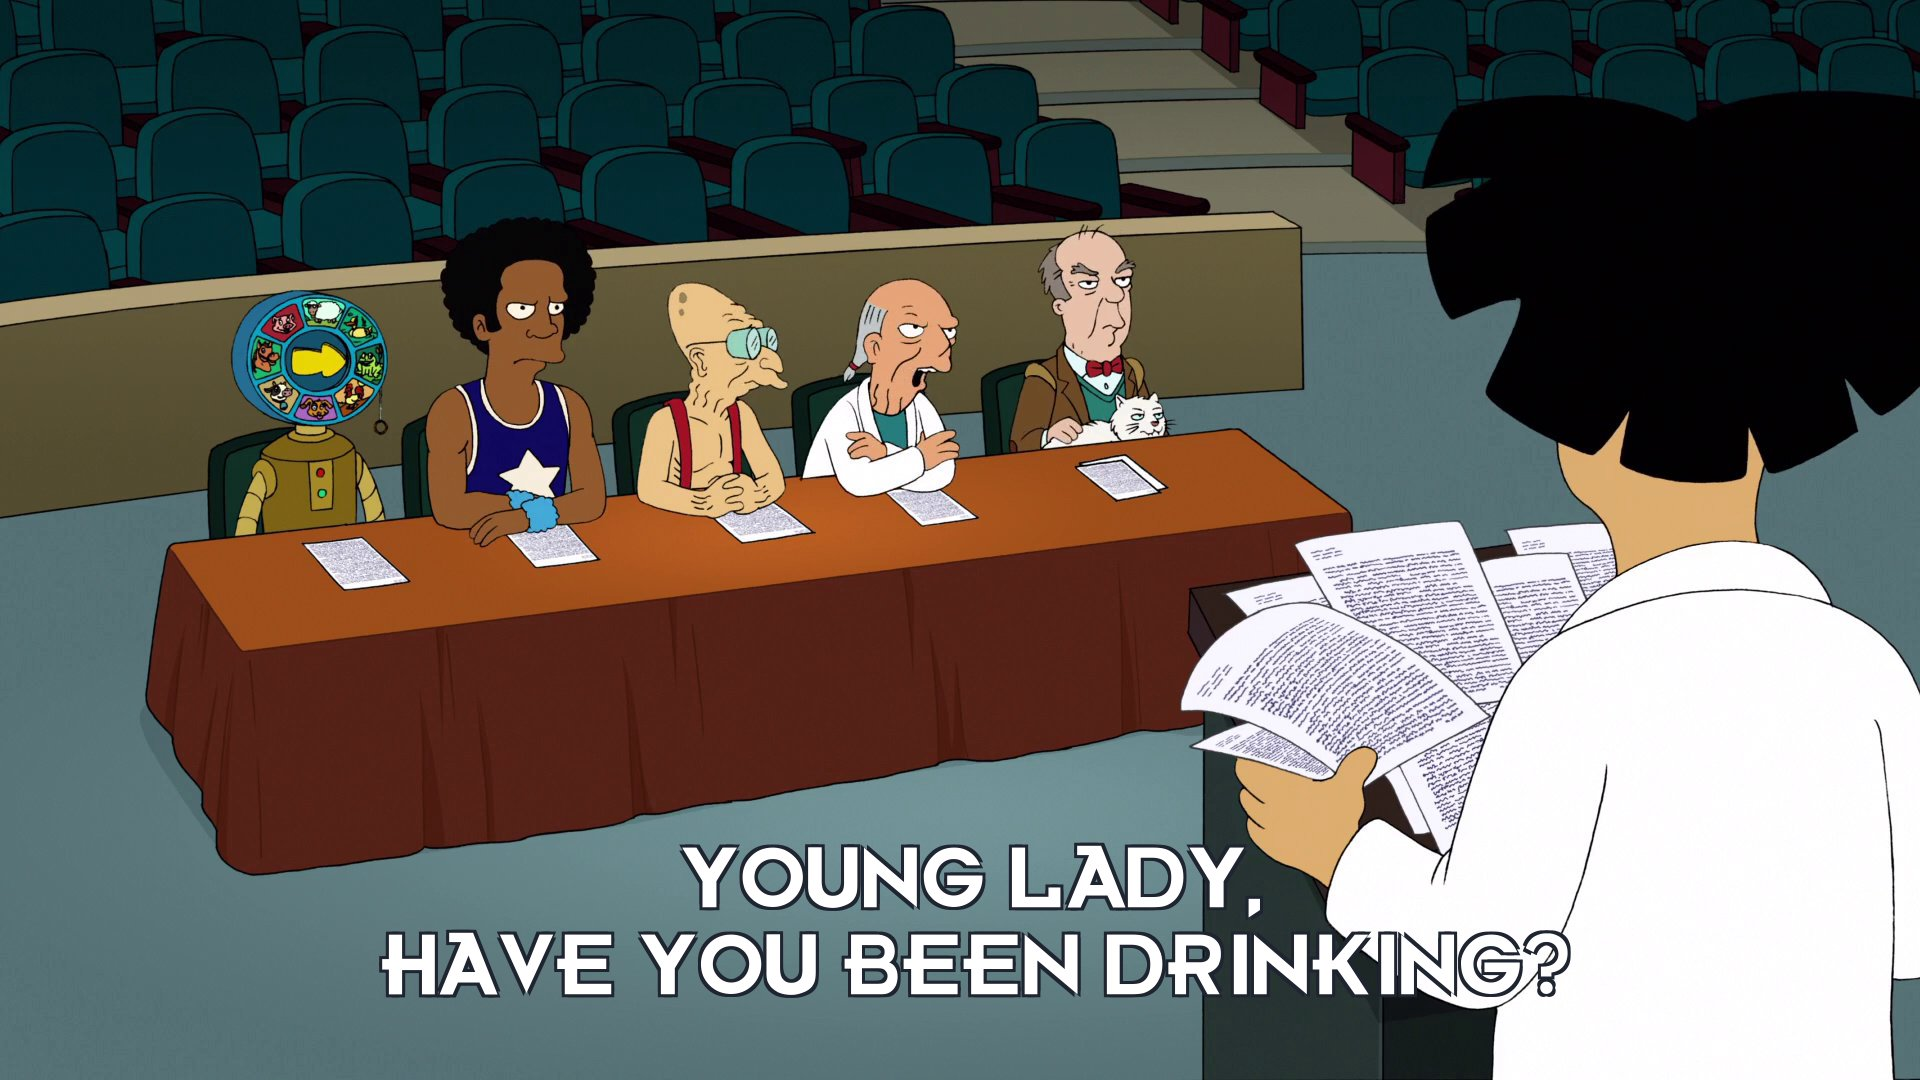 Prof Ogden Wernstrom: Young lady, have you been drinking?